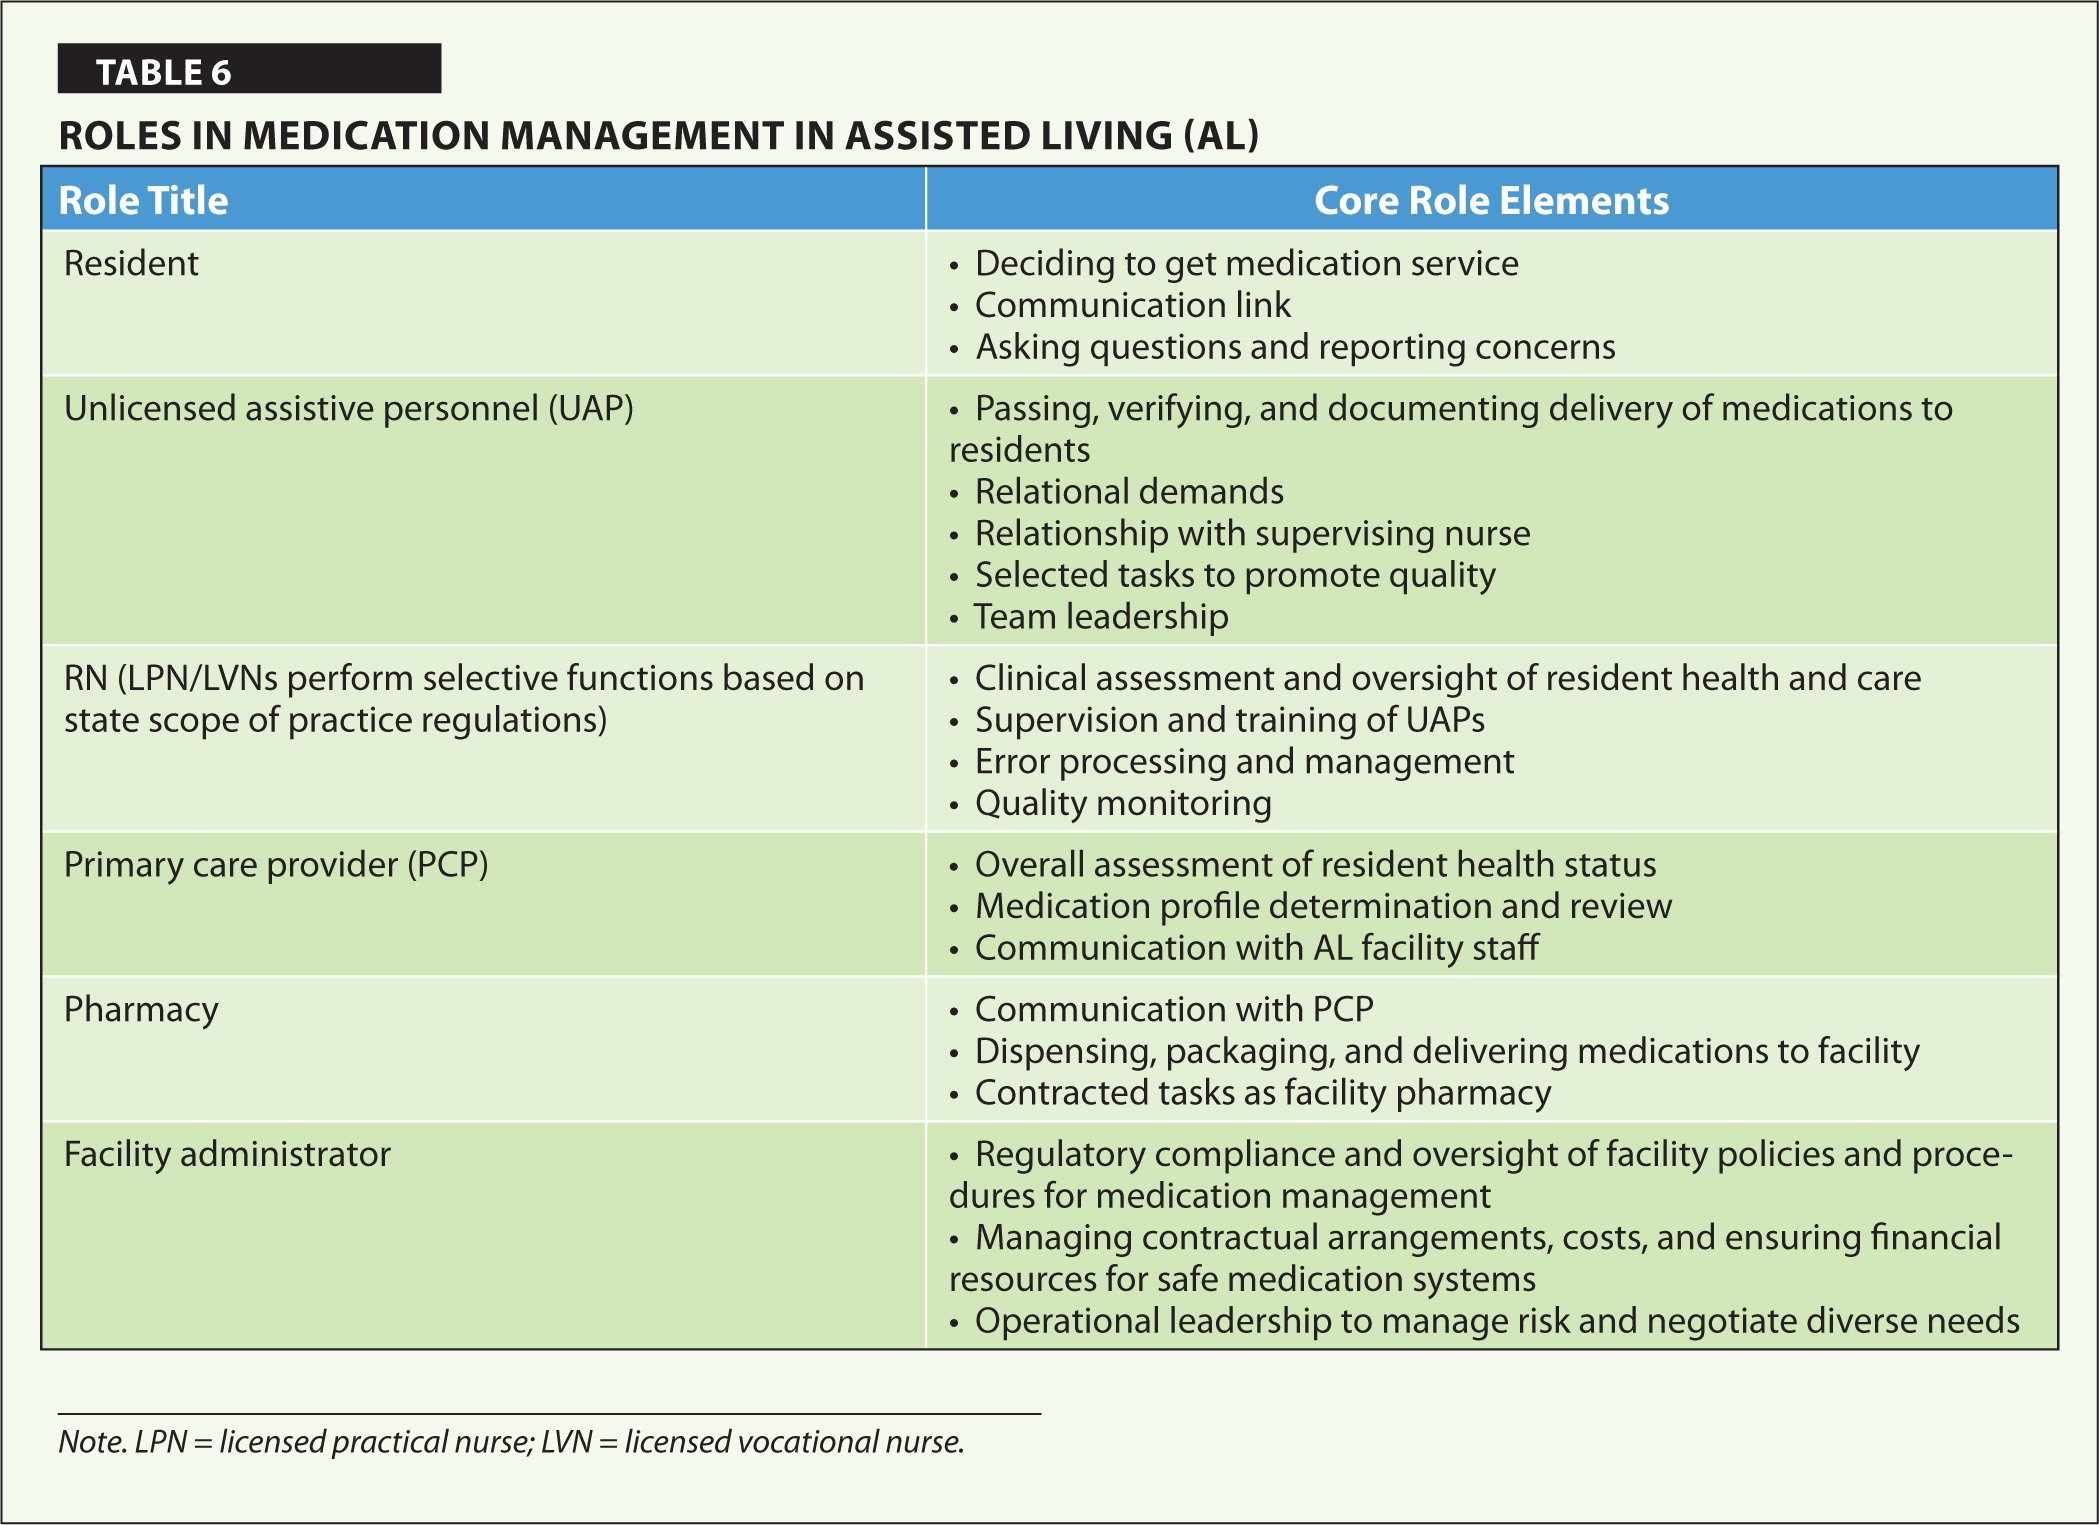 Roles in Medication Management in Assisted Living (AL)